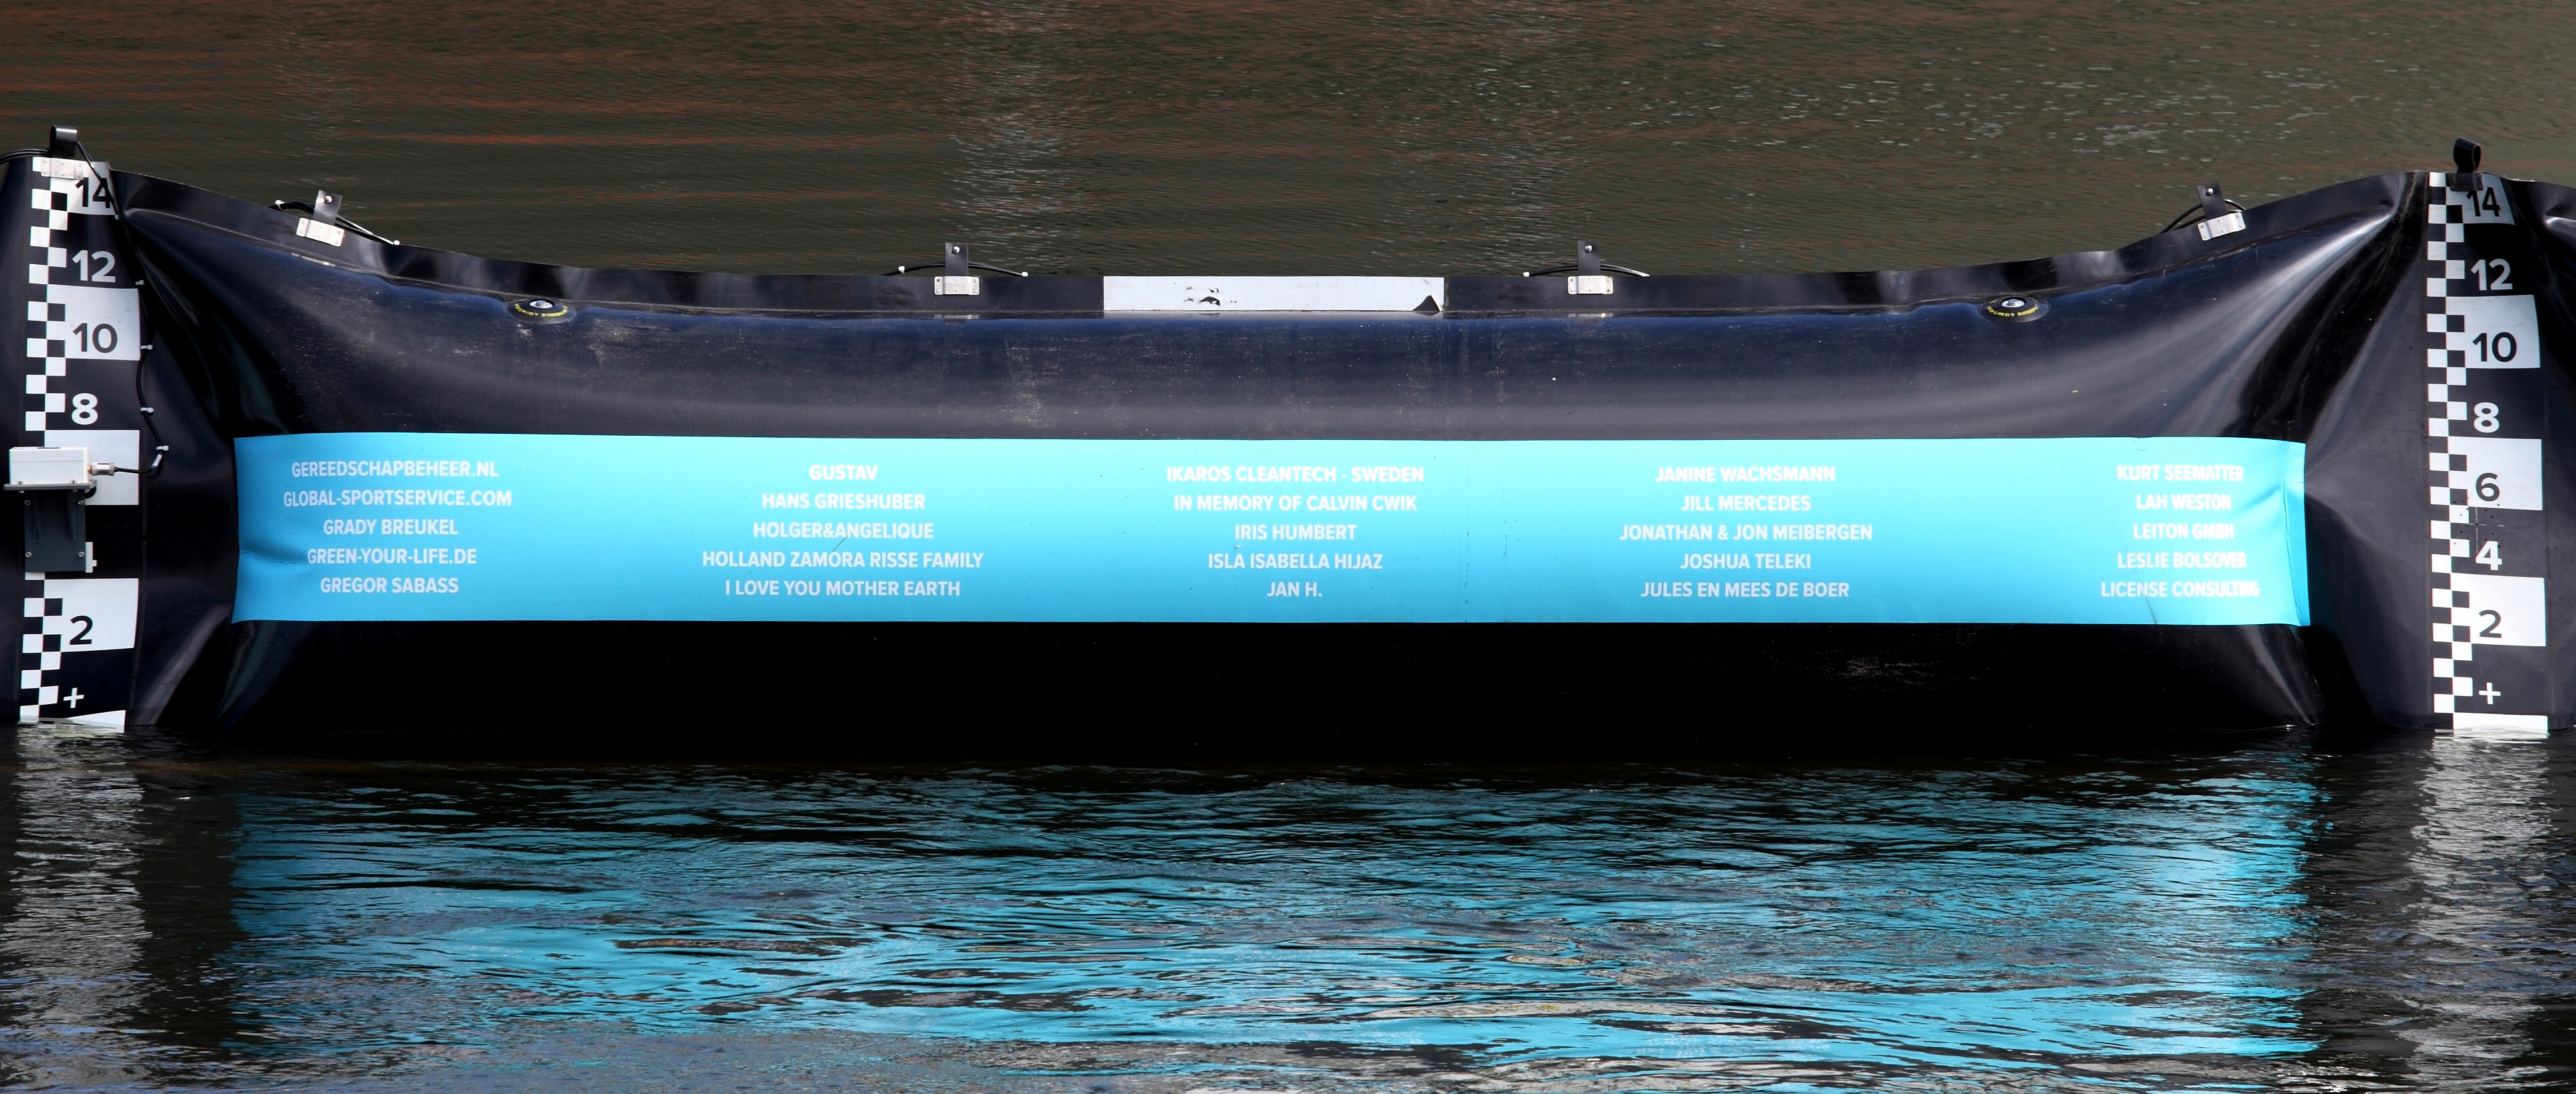 Ocean Cleanup prototype detail